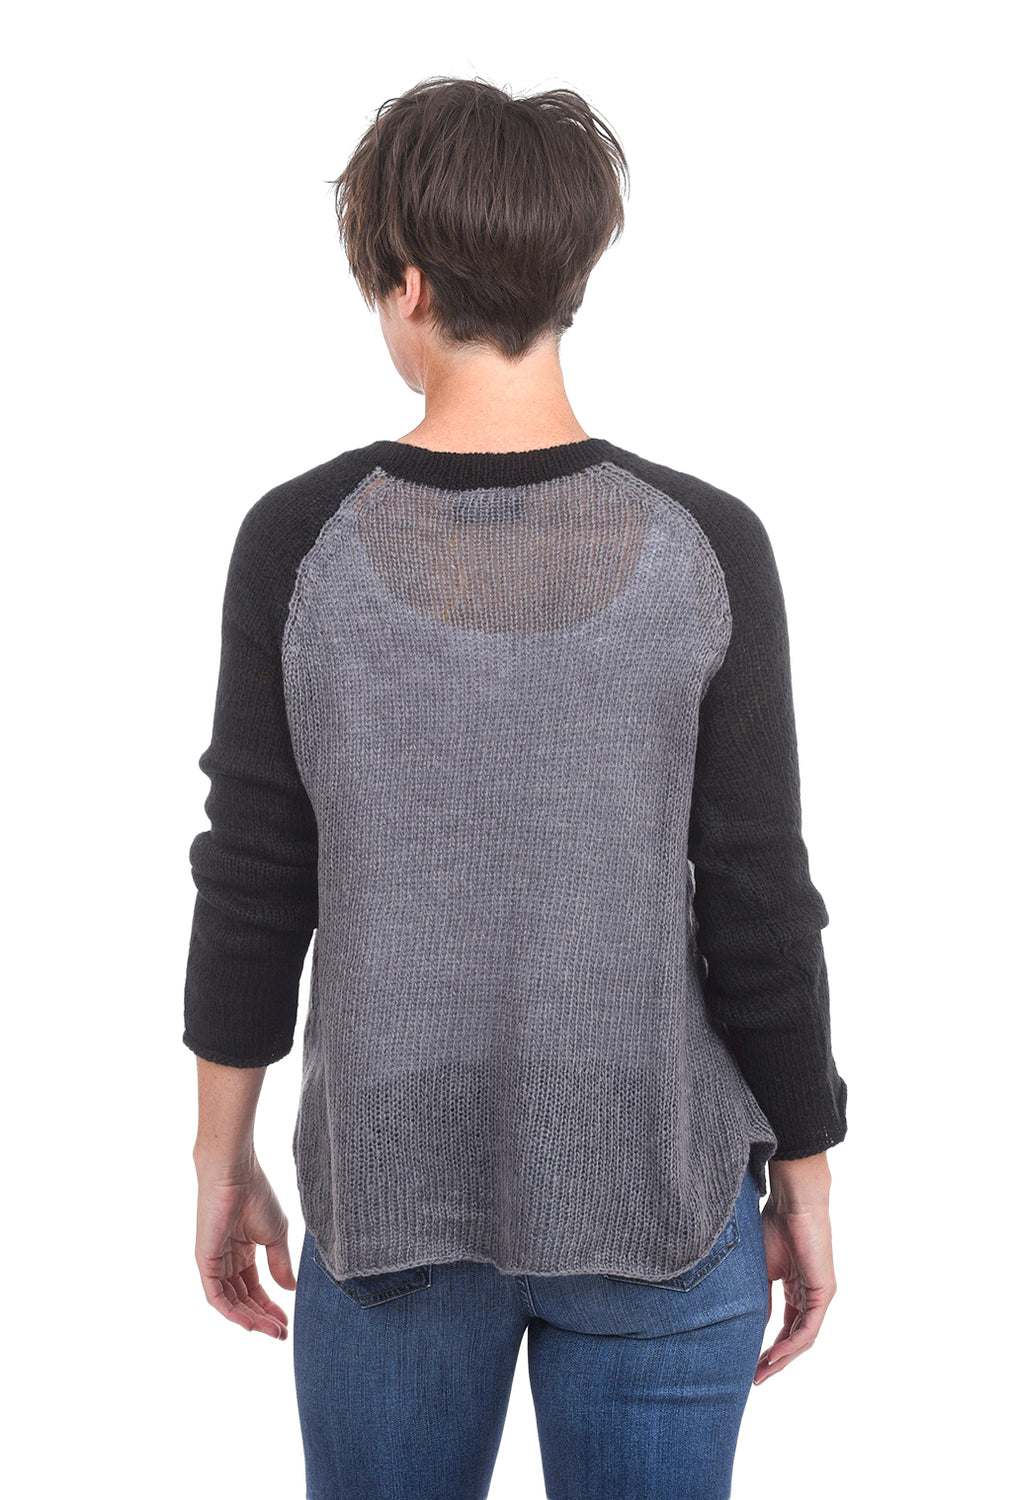 Wooden Ships Tomboy Raglan Sweater, Black/Gunmetal